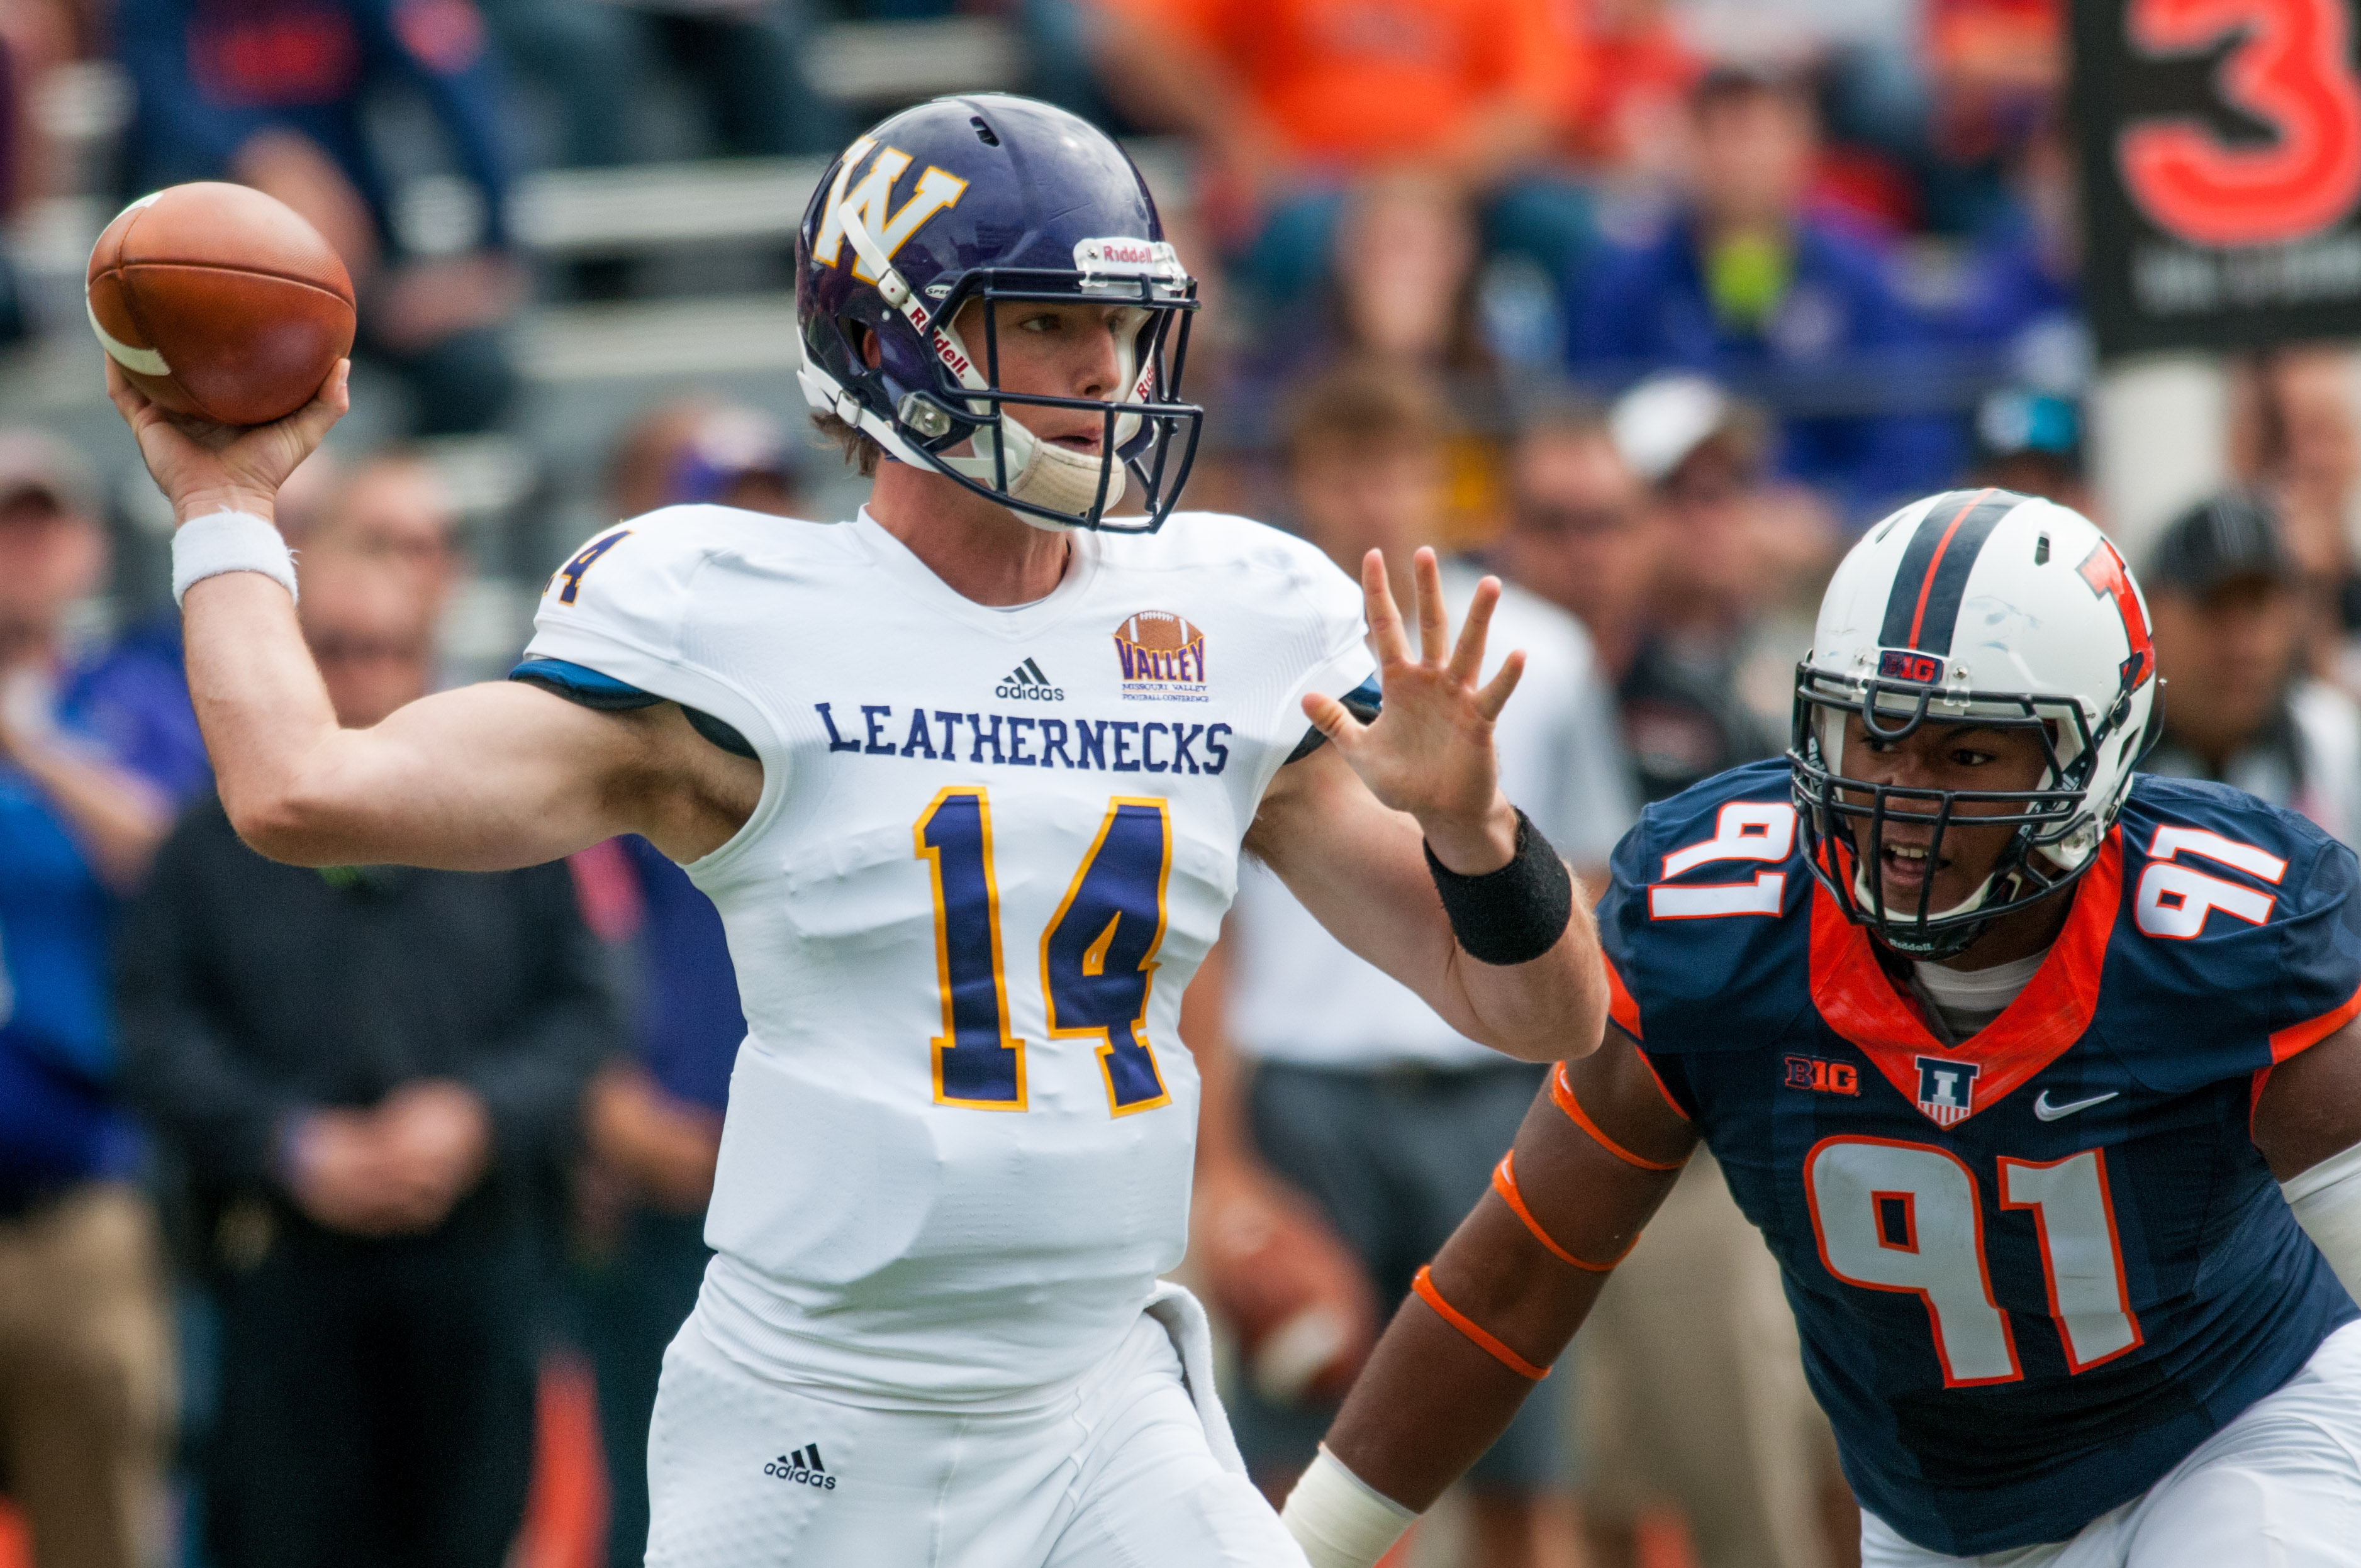 Western Illinois quarterback Trenton Norvell (14) throws a pass as Illinois defensive end Dawuane Smoot (91) pursues during the first quarter of an NCAA college football game Saturday, Sept. 12, 2015, at Memorial Stadium in Champaign, Ill. (AP Photo/Bradl